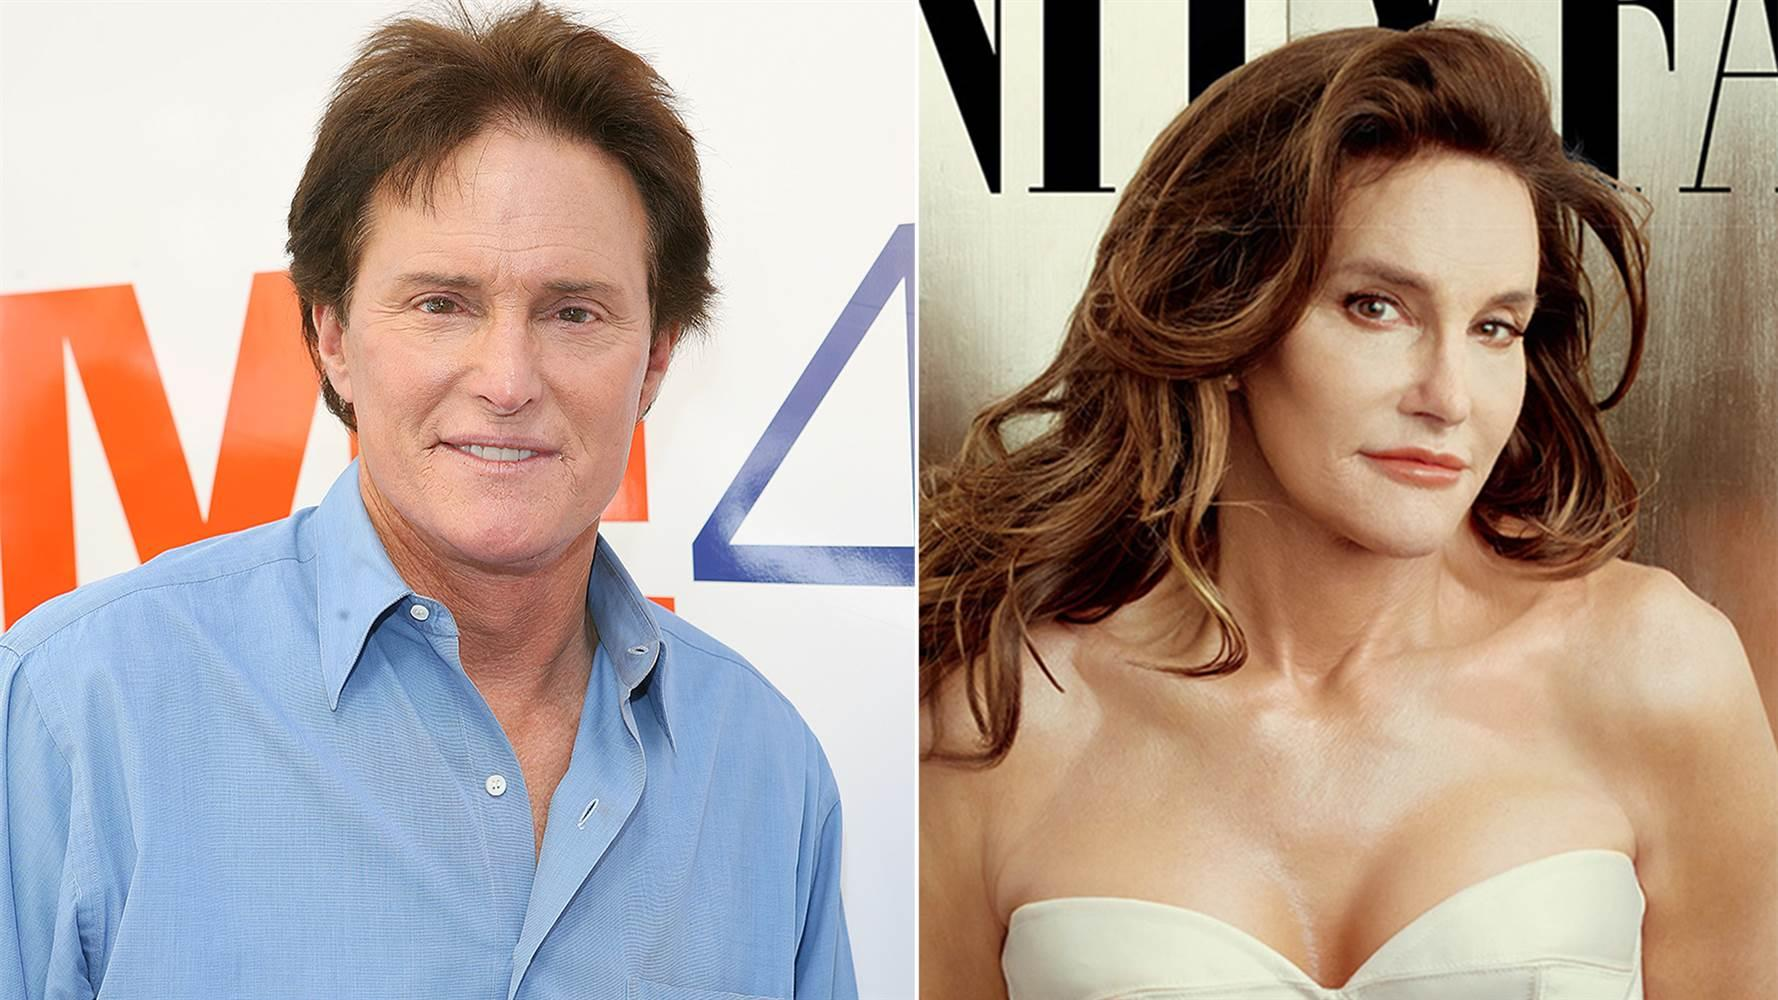 Bruce after jenner pictures before and